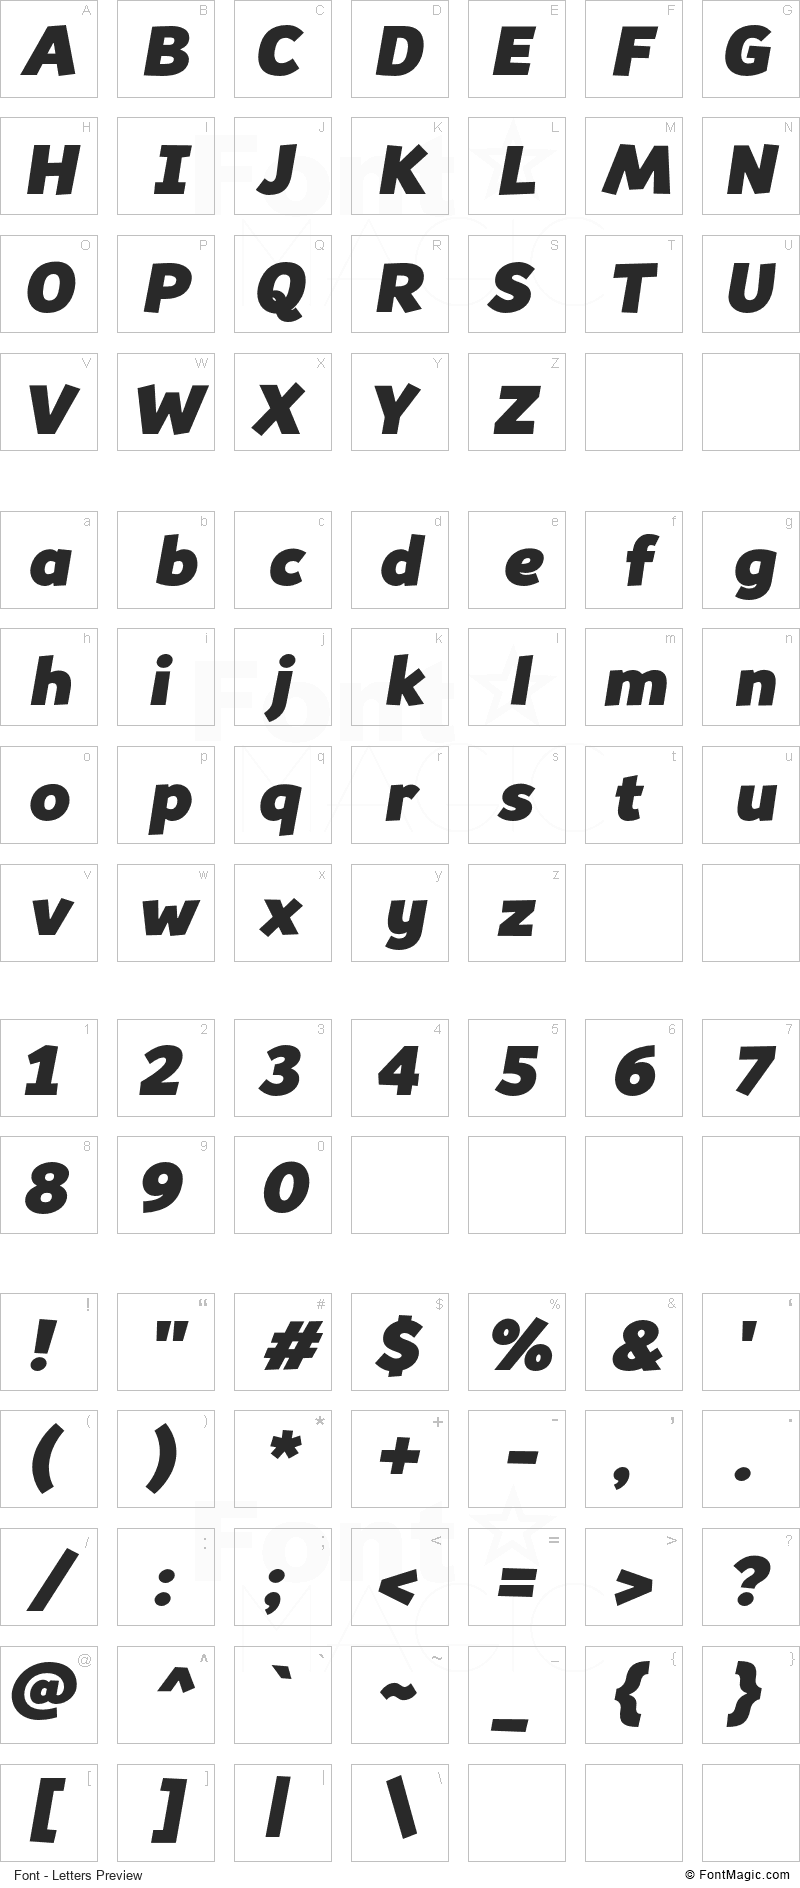 Souses Font - All Latters Preview Chart